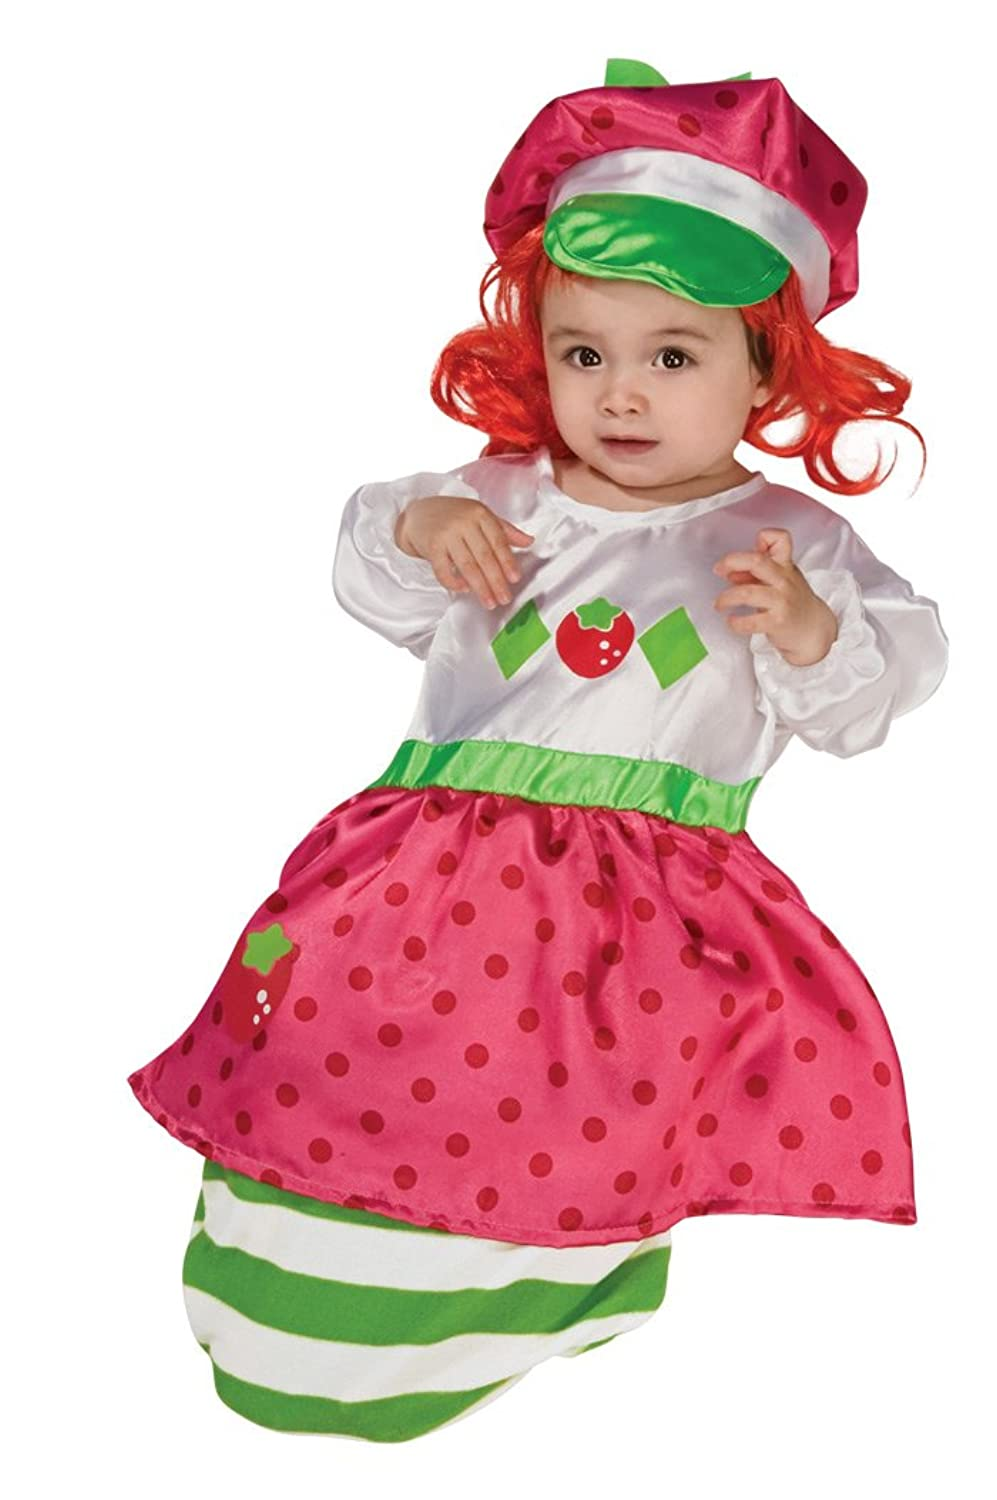 Amazon.com Strawberry Shortcake Baby Bunting And Headpiece Red Print 0-9 Months Costume Clothing  sc 1 st  Amazon.com & Amazon.com: Strawberry Shortcake Baby Bunting And Headpiece Red ...